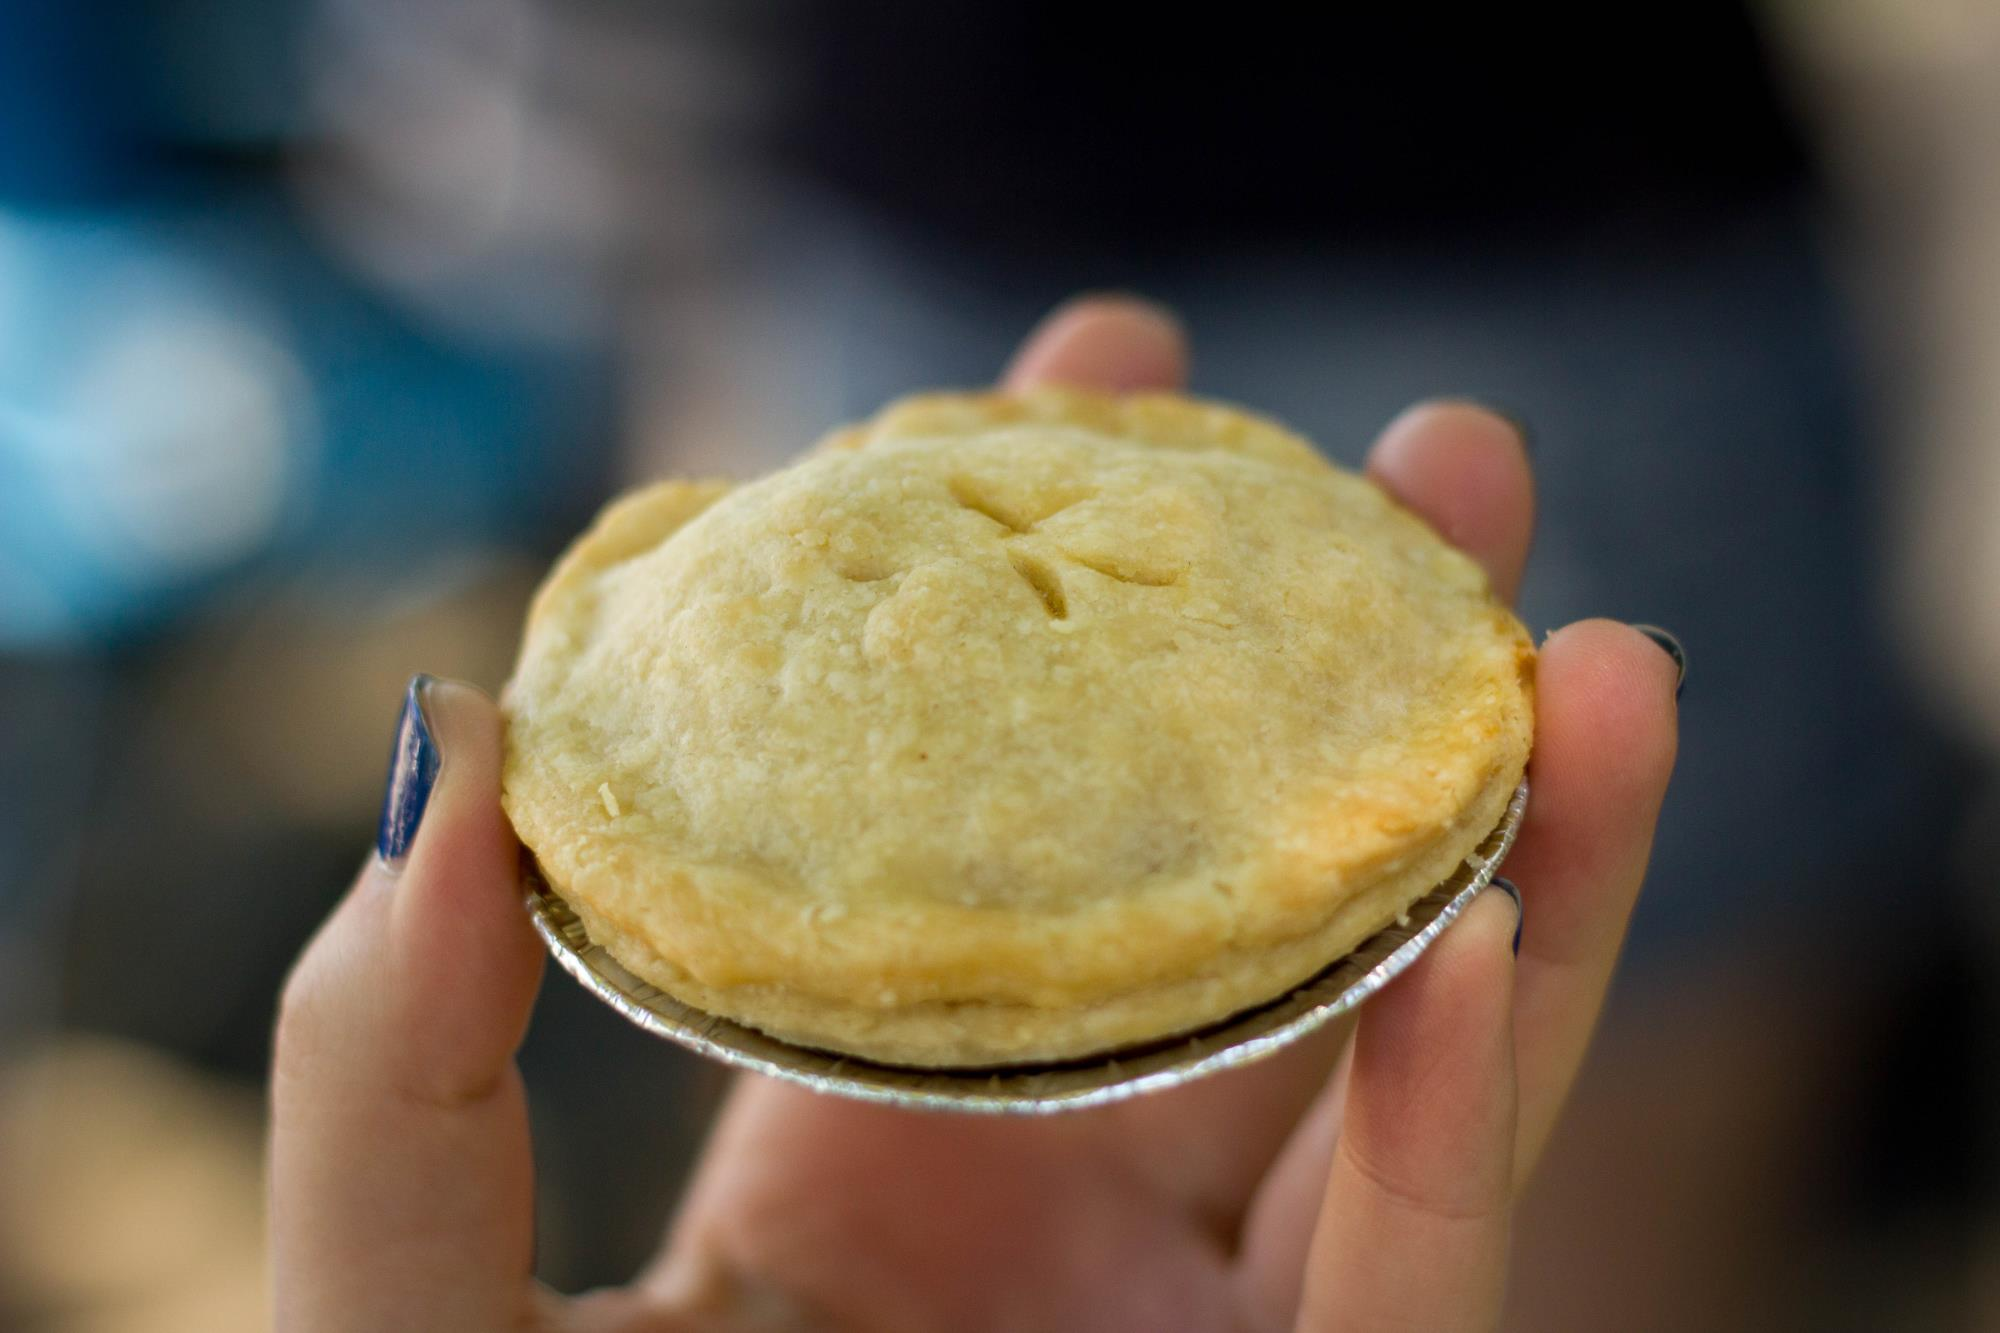 tiny pie held in hand